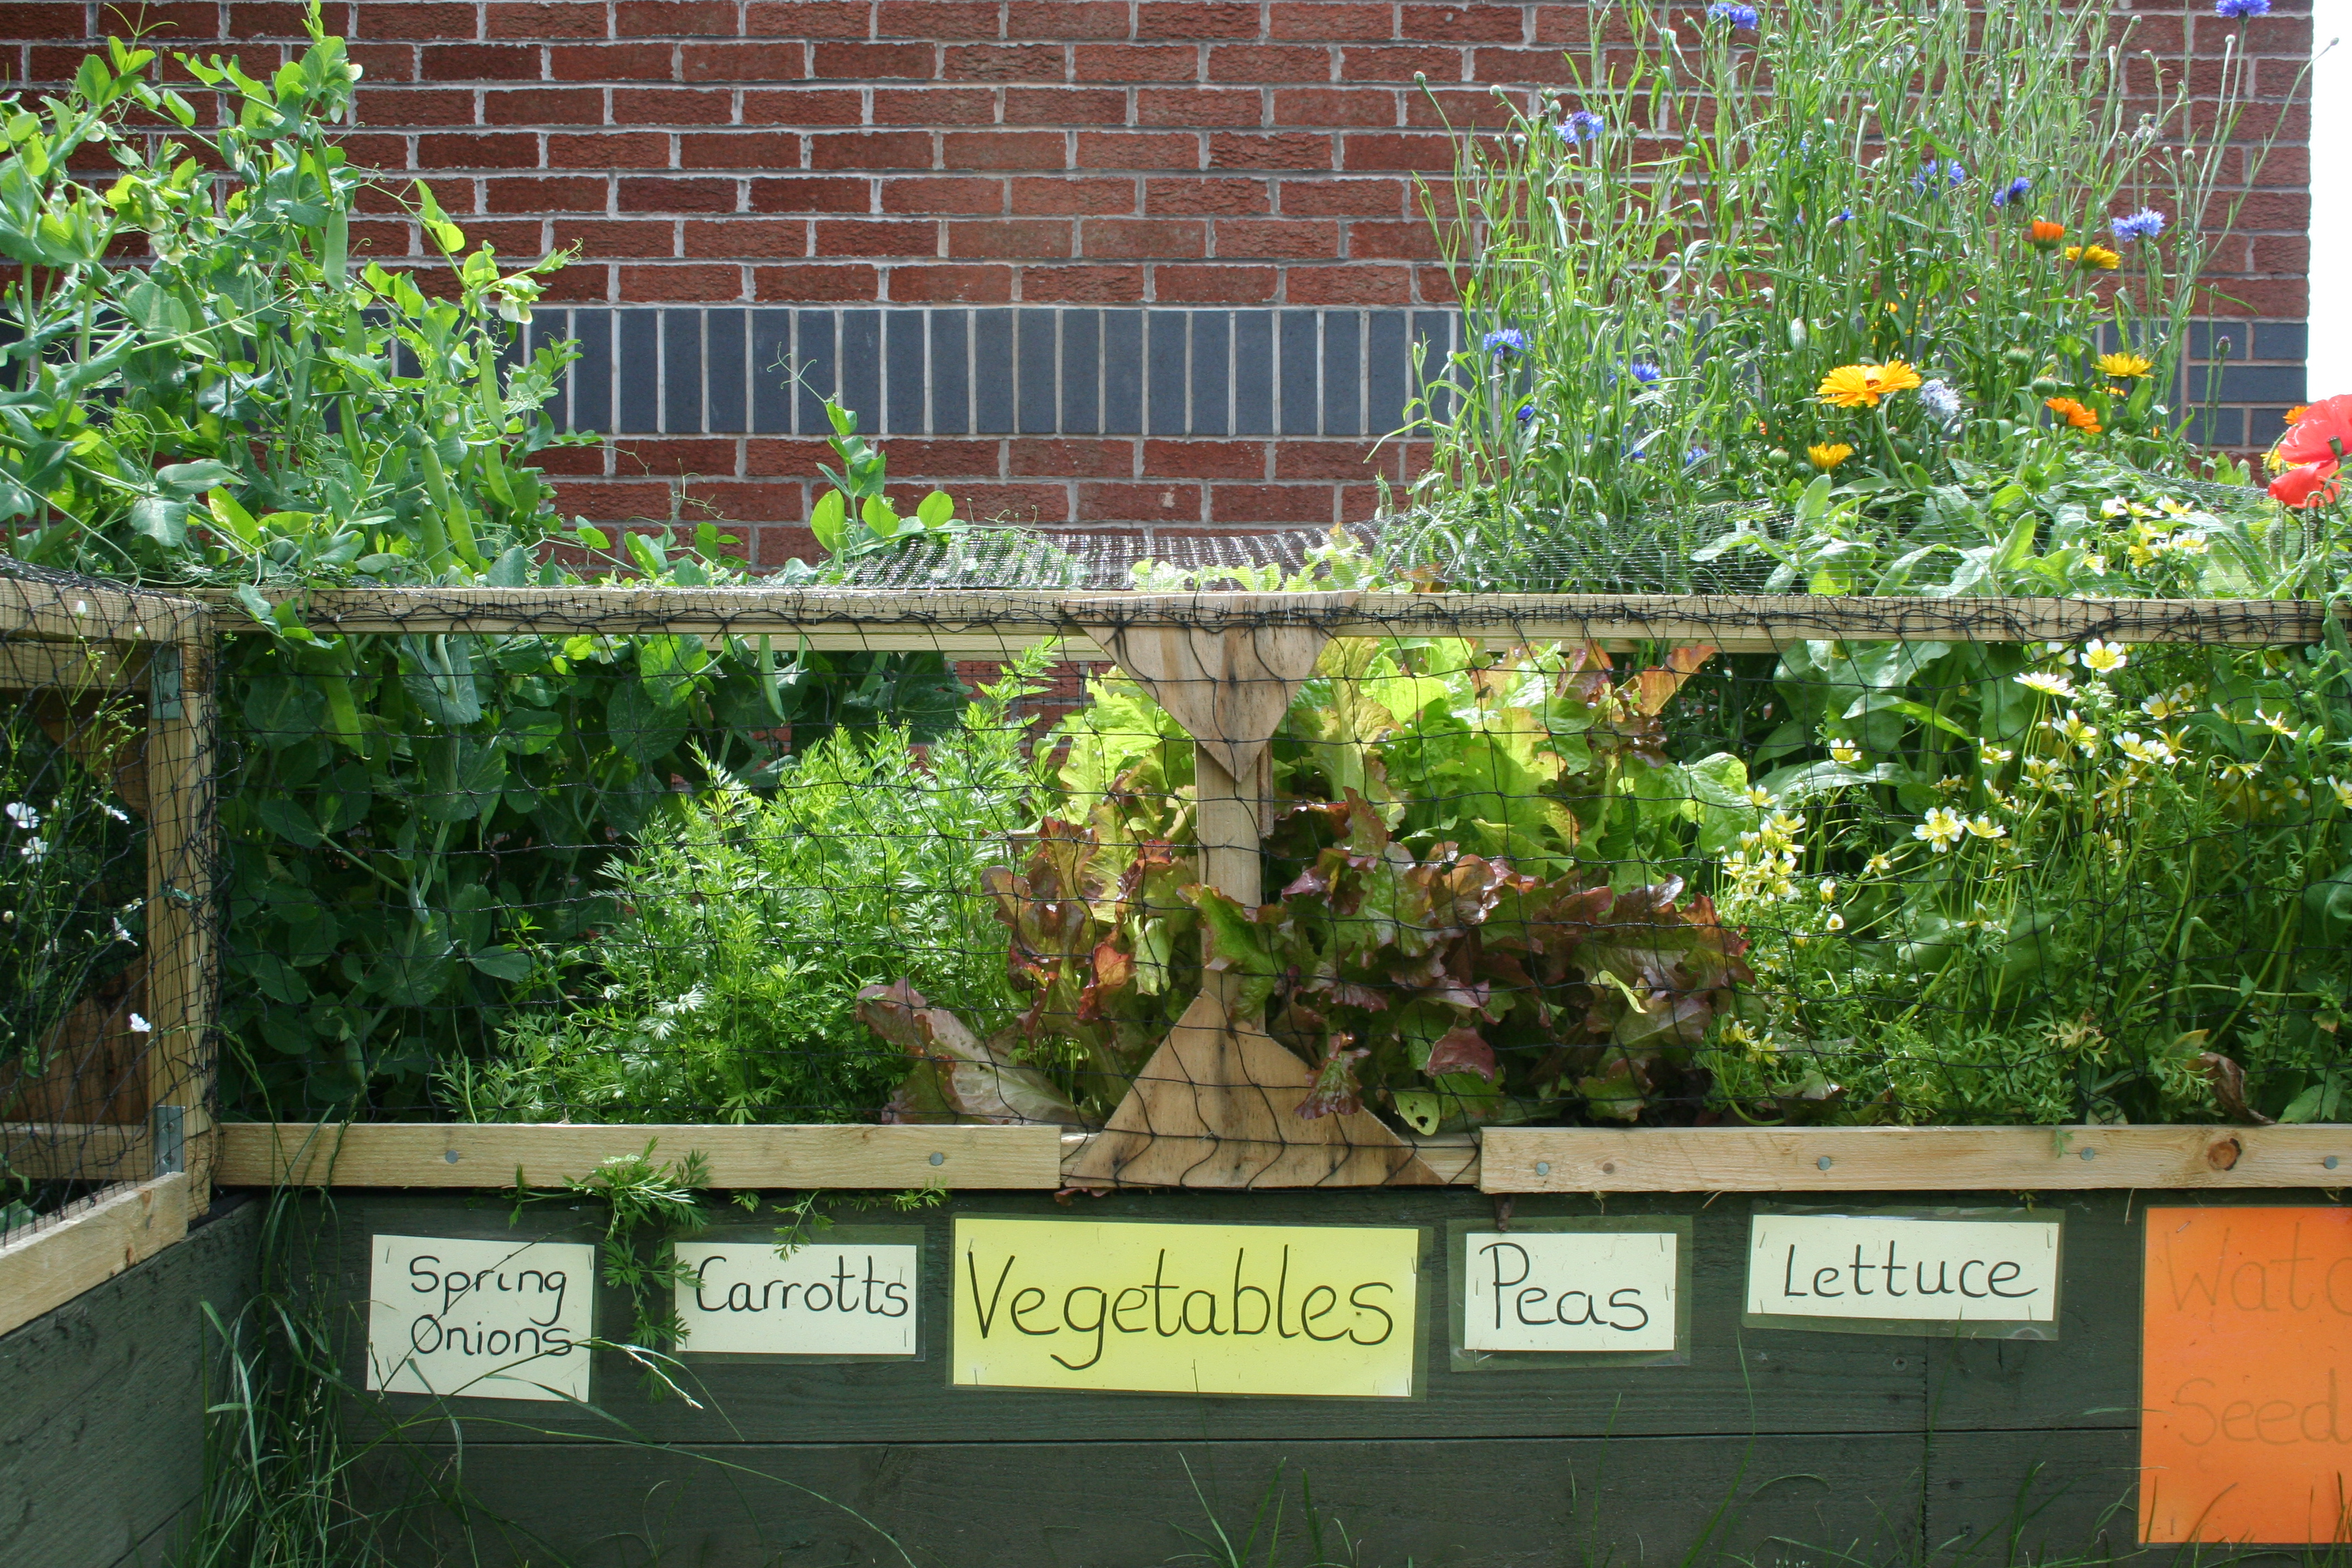 Vegetables grown by the children